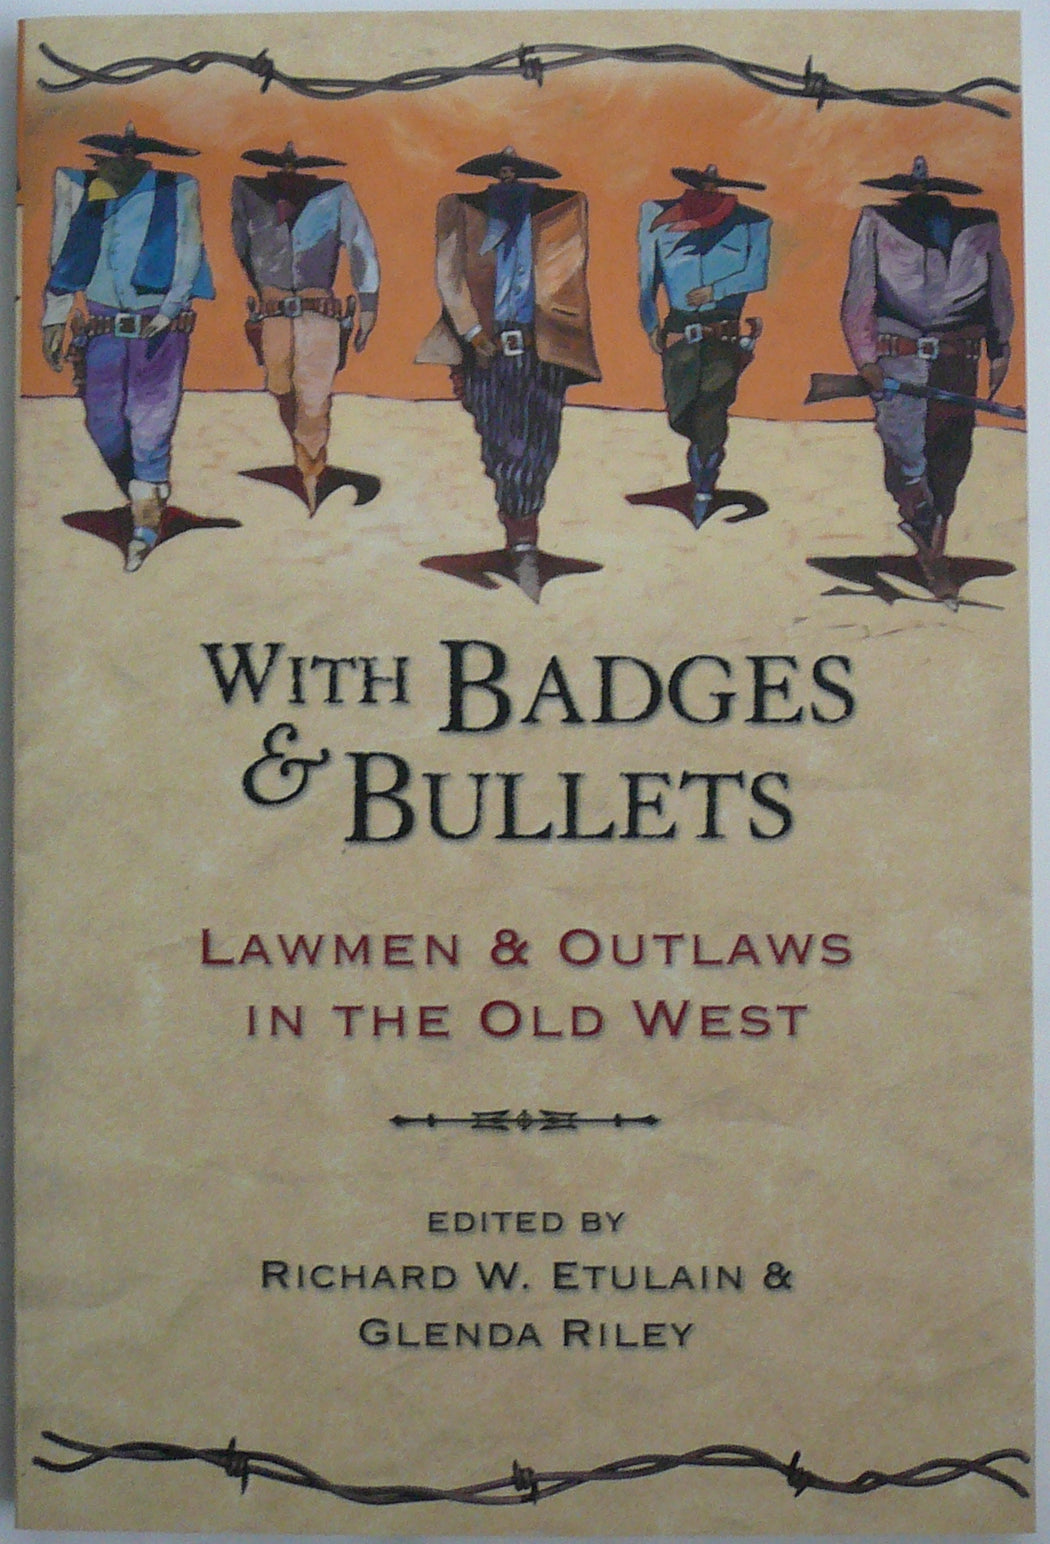 With Badges and Bullets